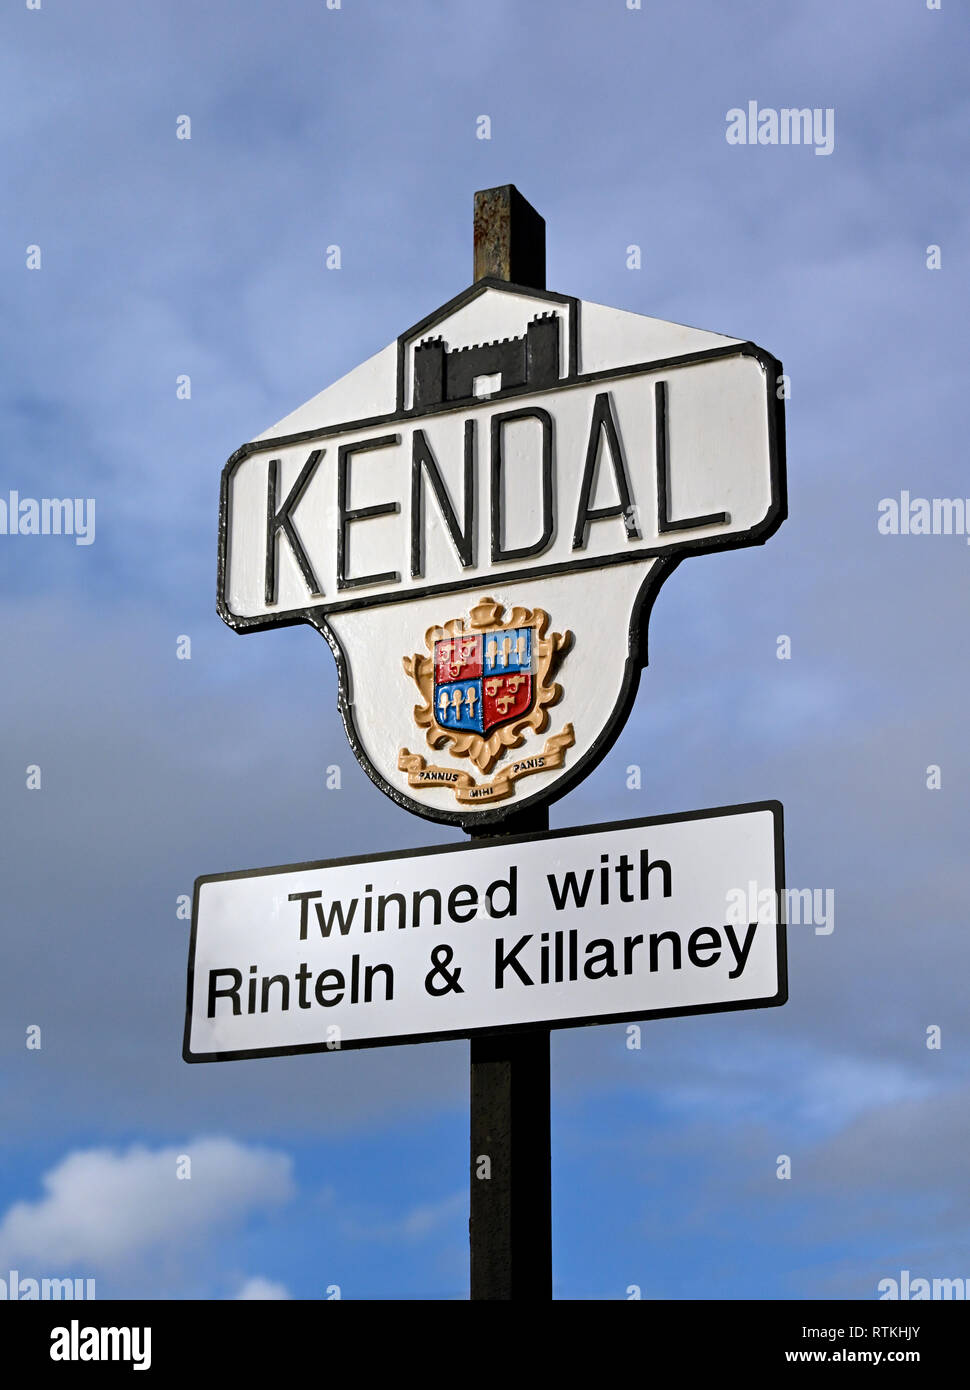 Kendal town boundary marker sign. Natland Road, Kendal, Cumbria, England, United Kingdom, Europe. Stock Photo